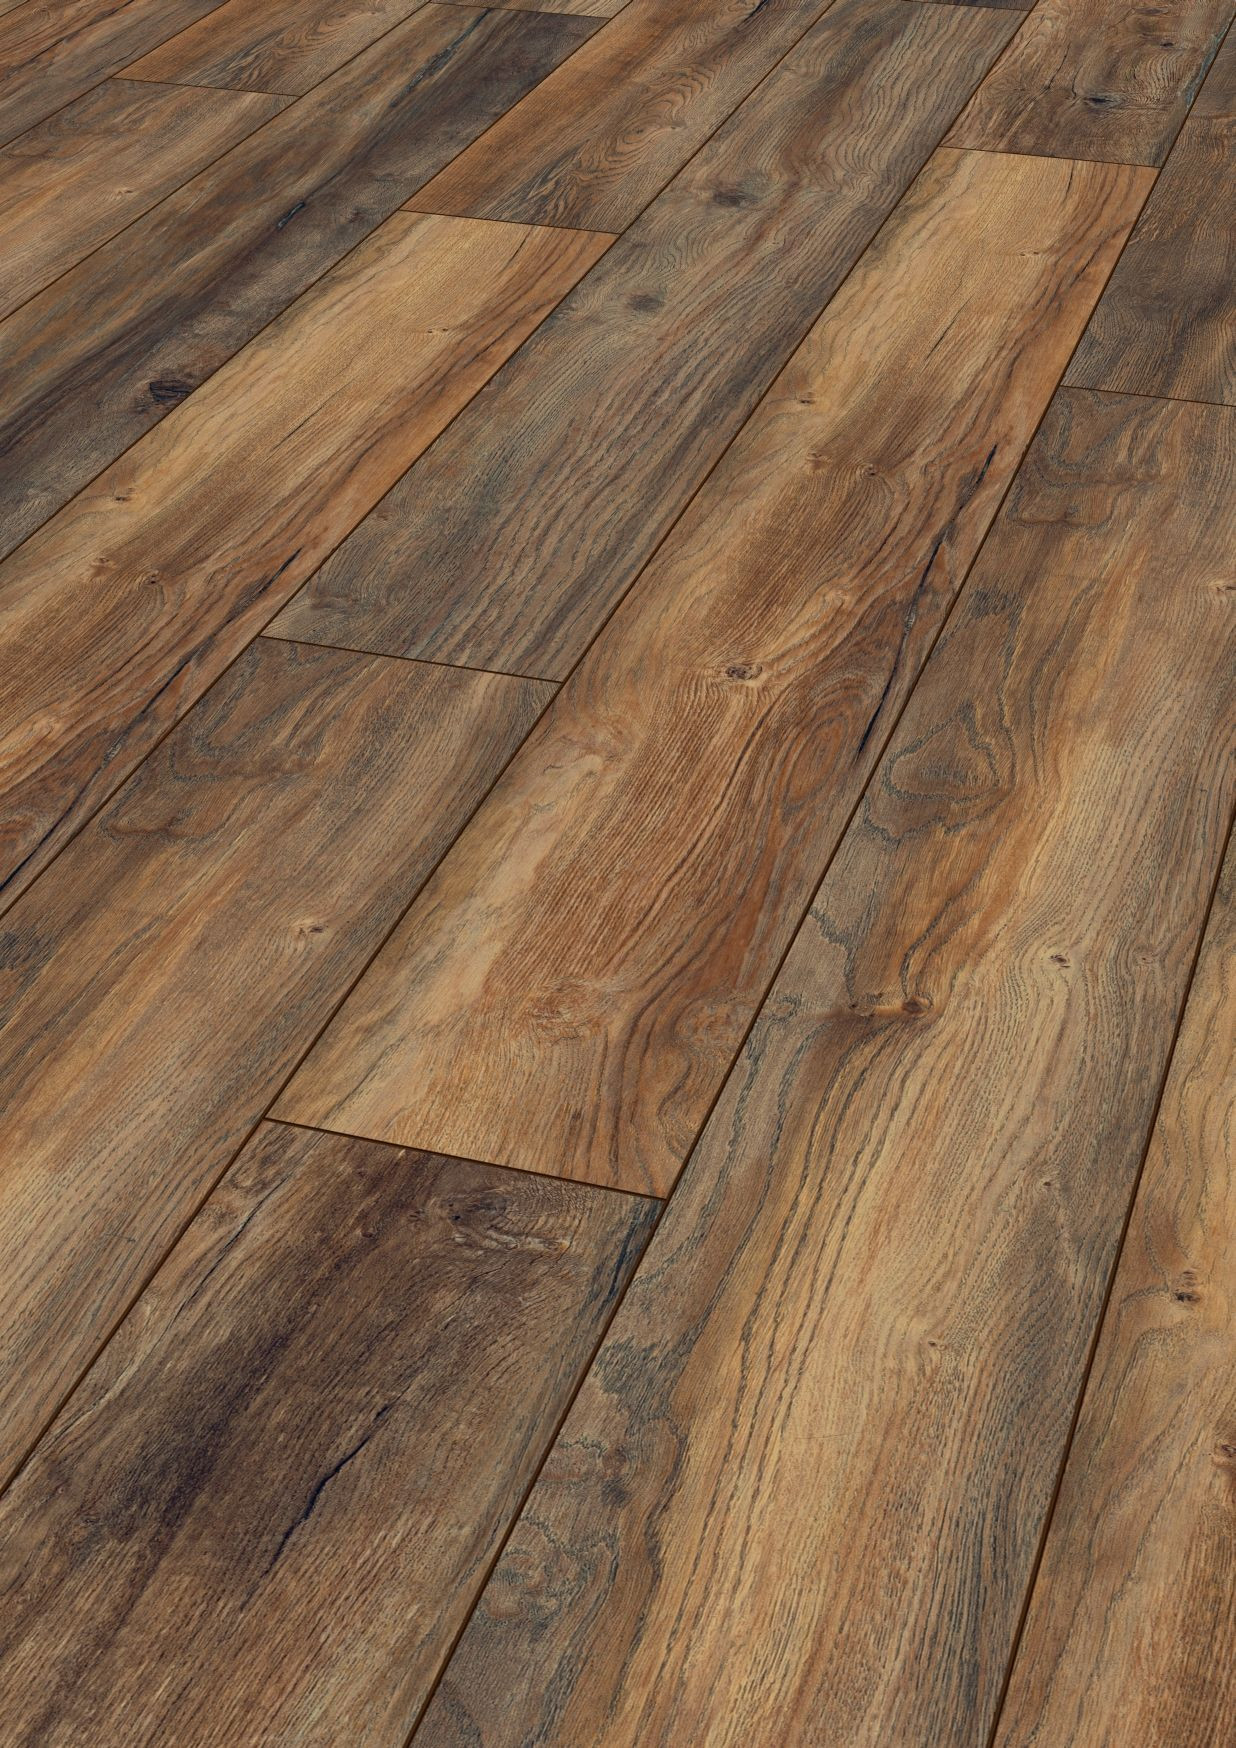 fake hardwood floor options of kronotex amazon harbour oak flooring pinterest flooring home with with amazon the floor for everyone who appreciates the exclusive and the extraordinary it combines conventional beauty with individual fashioning